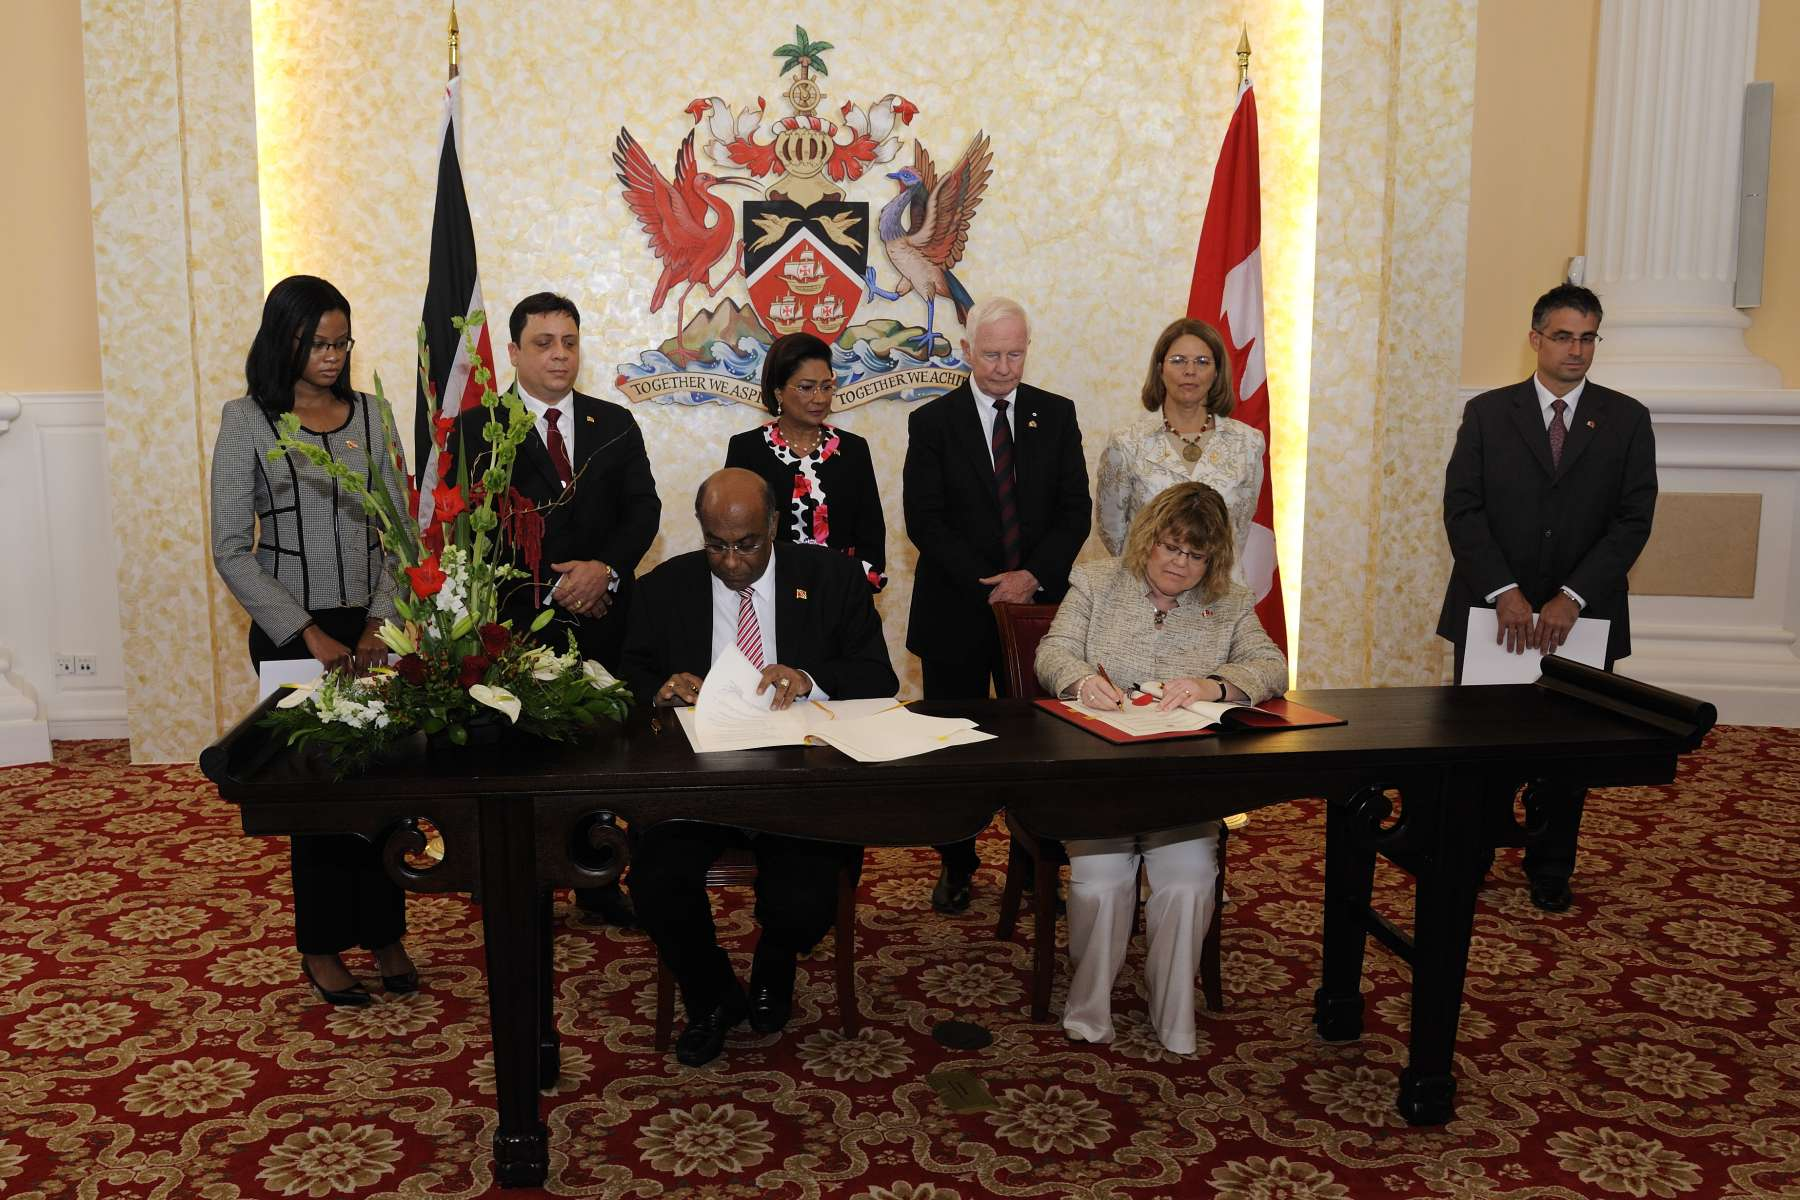 Following the meeting, the signature of a Technical Framework Arrangement with Trinidad and Tobago took place with the Honourable Diane Ablonczy, Minister of State of Foreign Affairs (Americas and Consular Affairs).